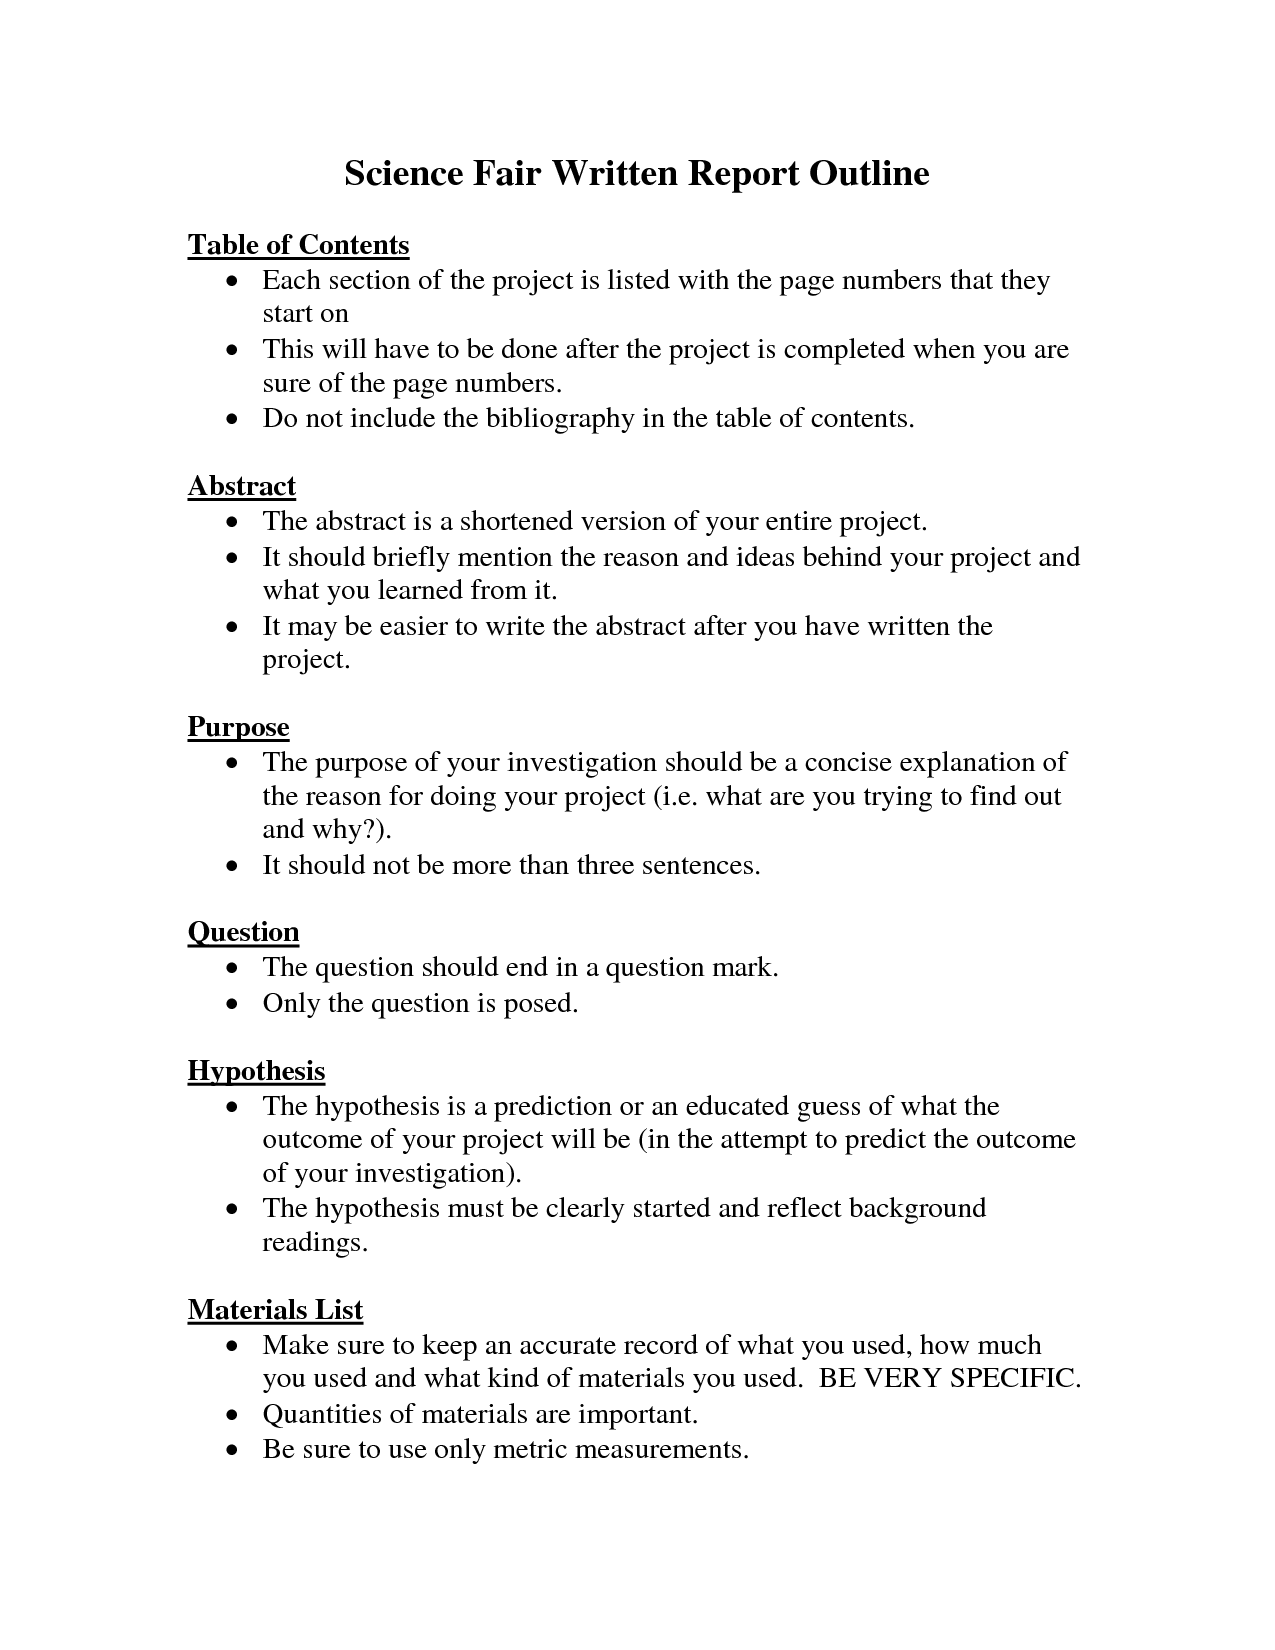 Research paper format for science fair